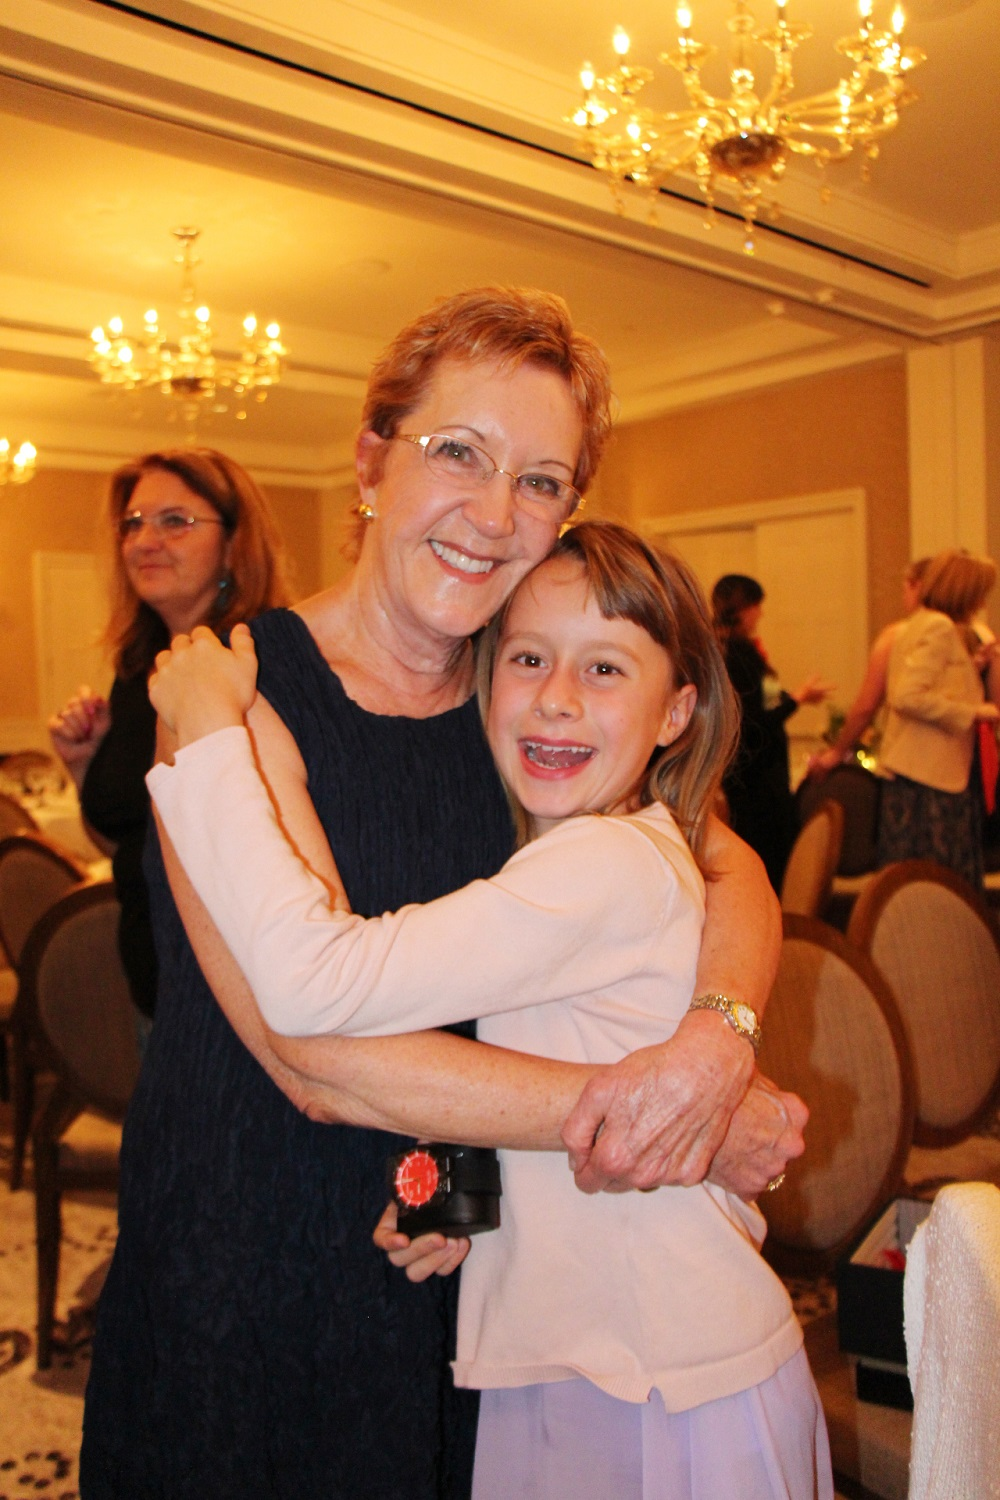 Honoree Mary Becker with her granddaughter, Tallulah Downs.